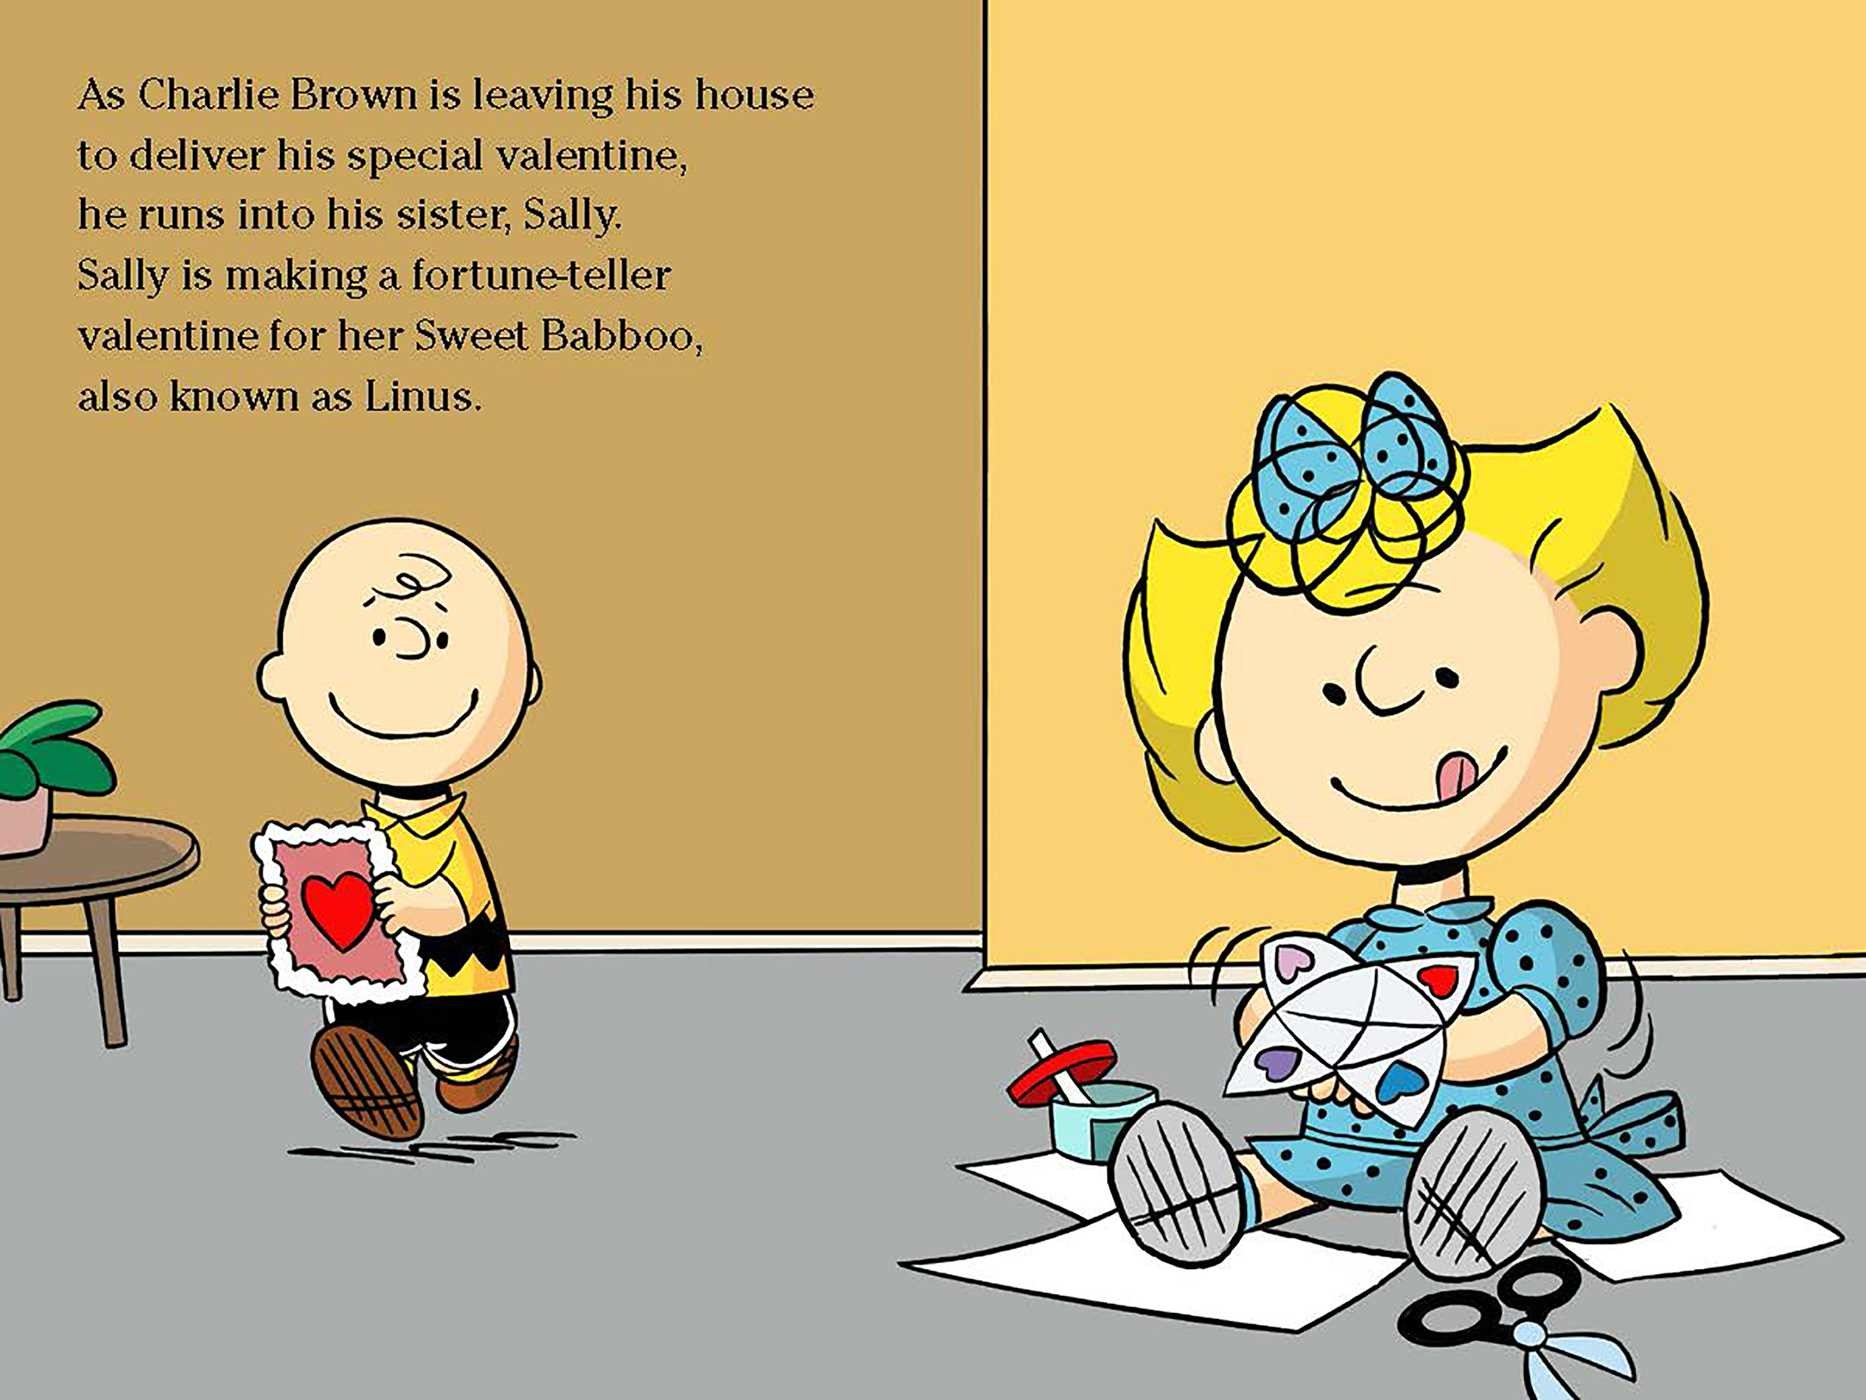 Happy valentines day charlie brown 9781481441339.in03